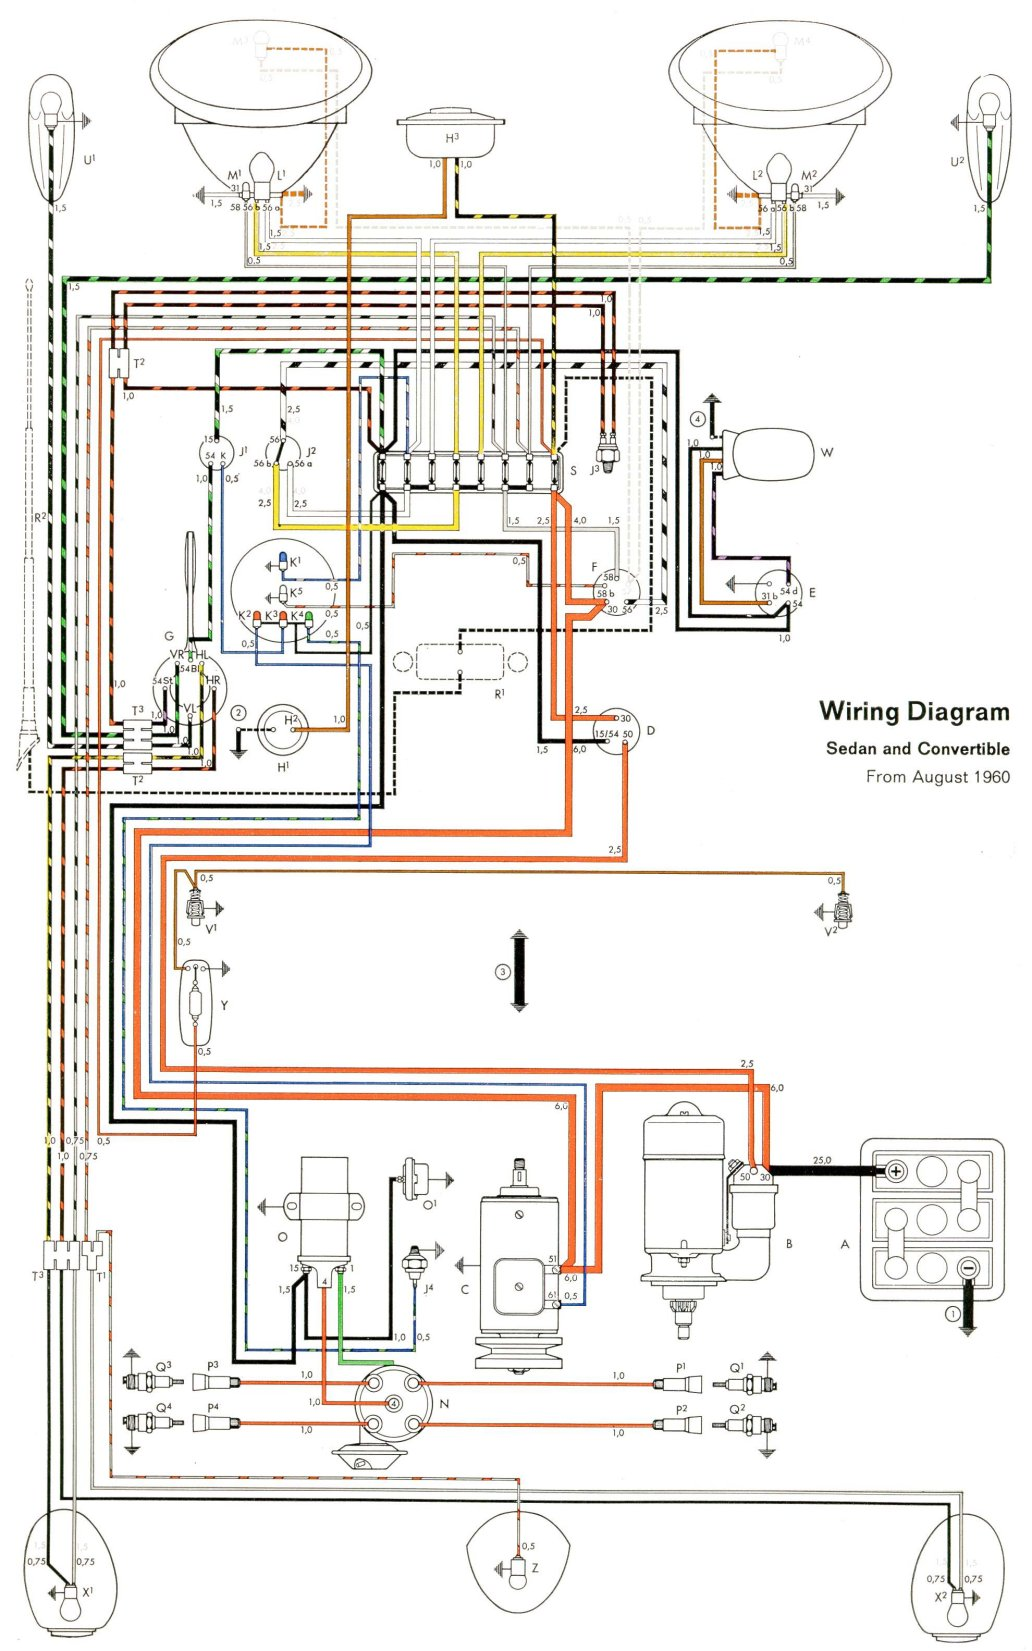 bug_61 european wiring diagram hyundai sonata wiring diagram \u2022 free vw wiring diagram symbols at virtualis.co